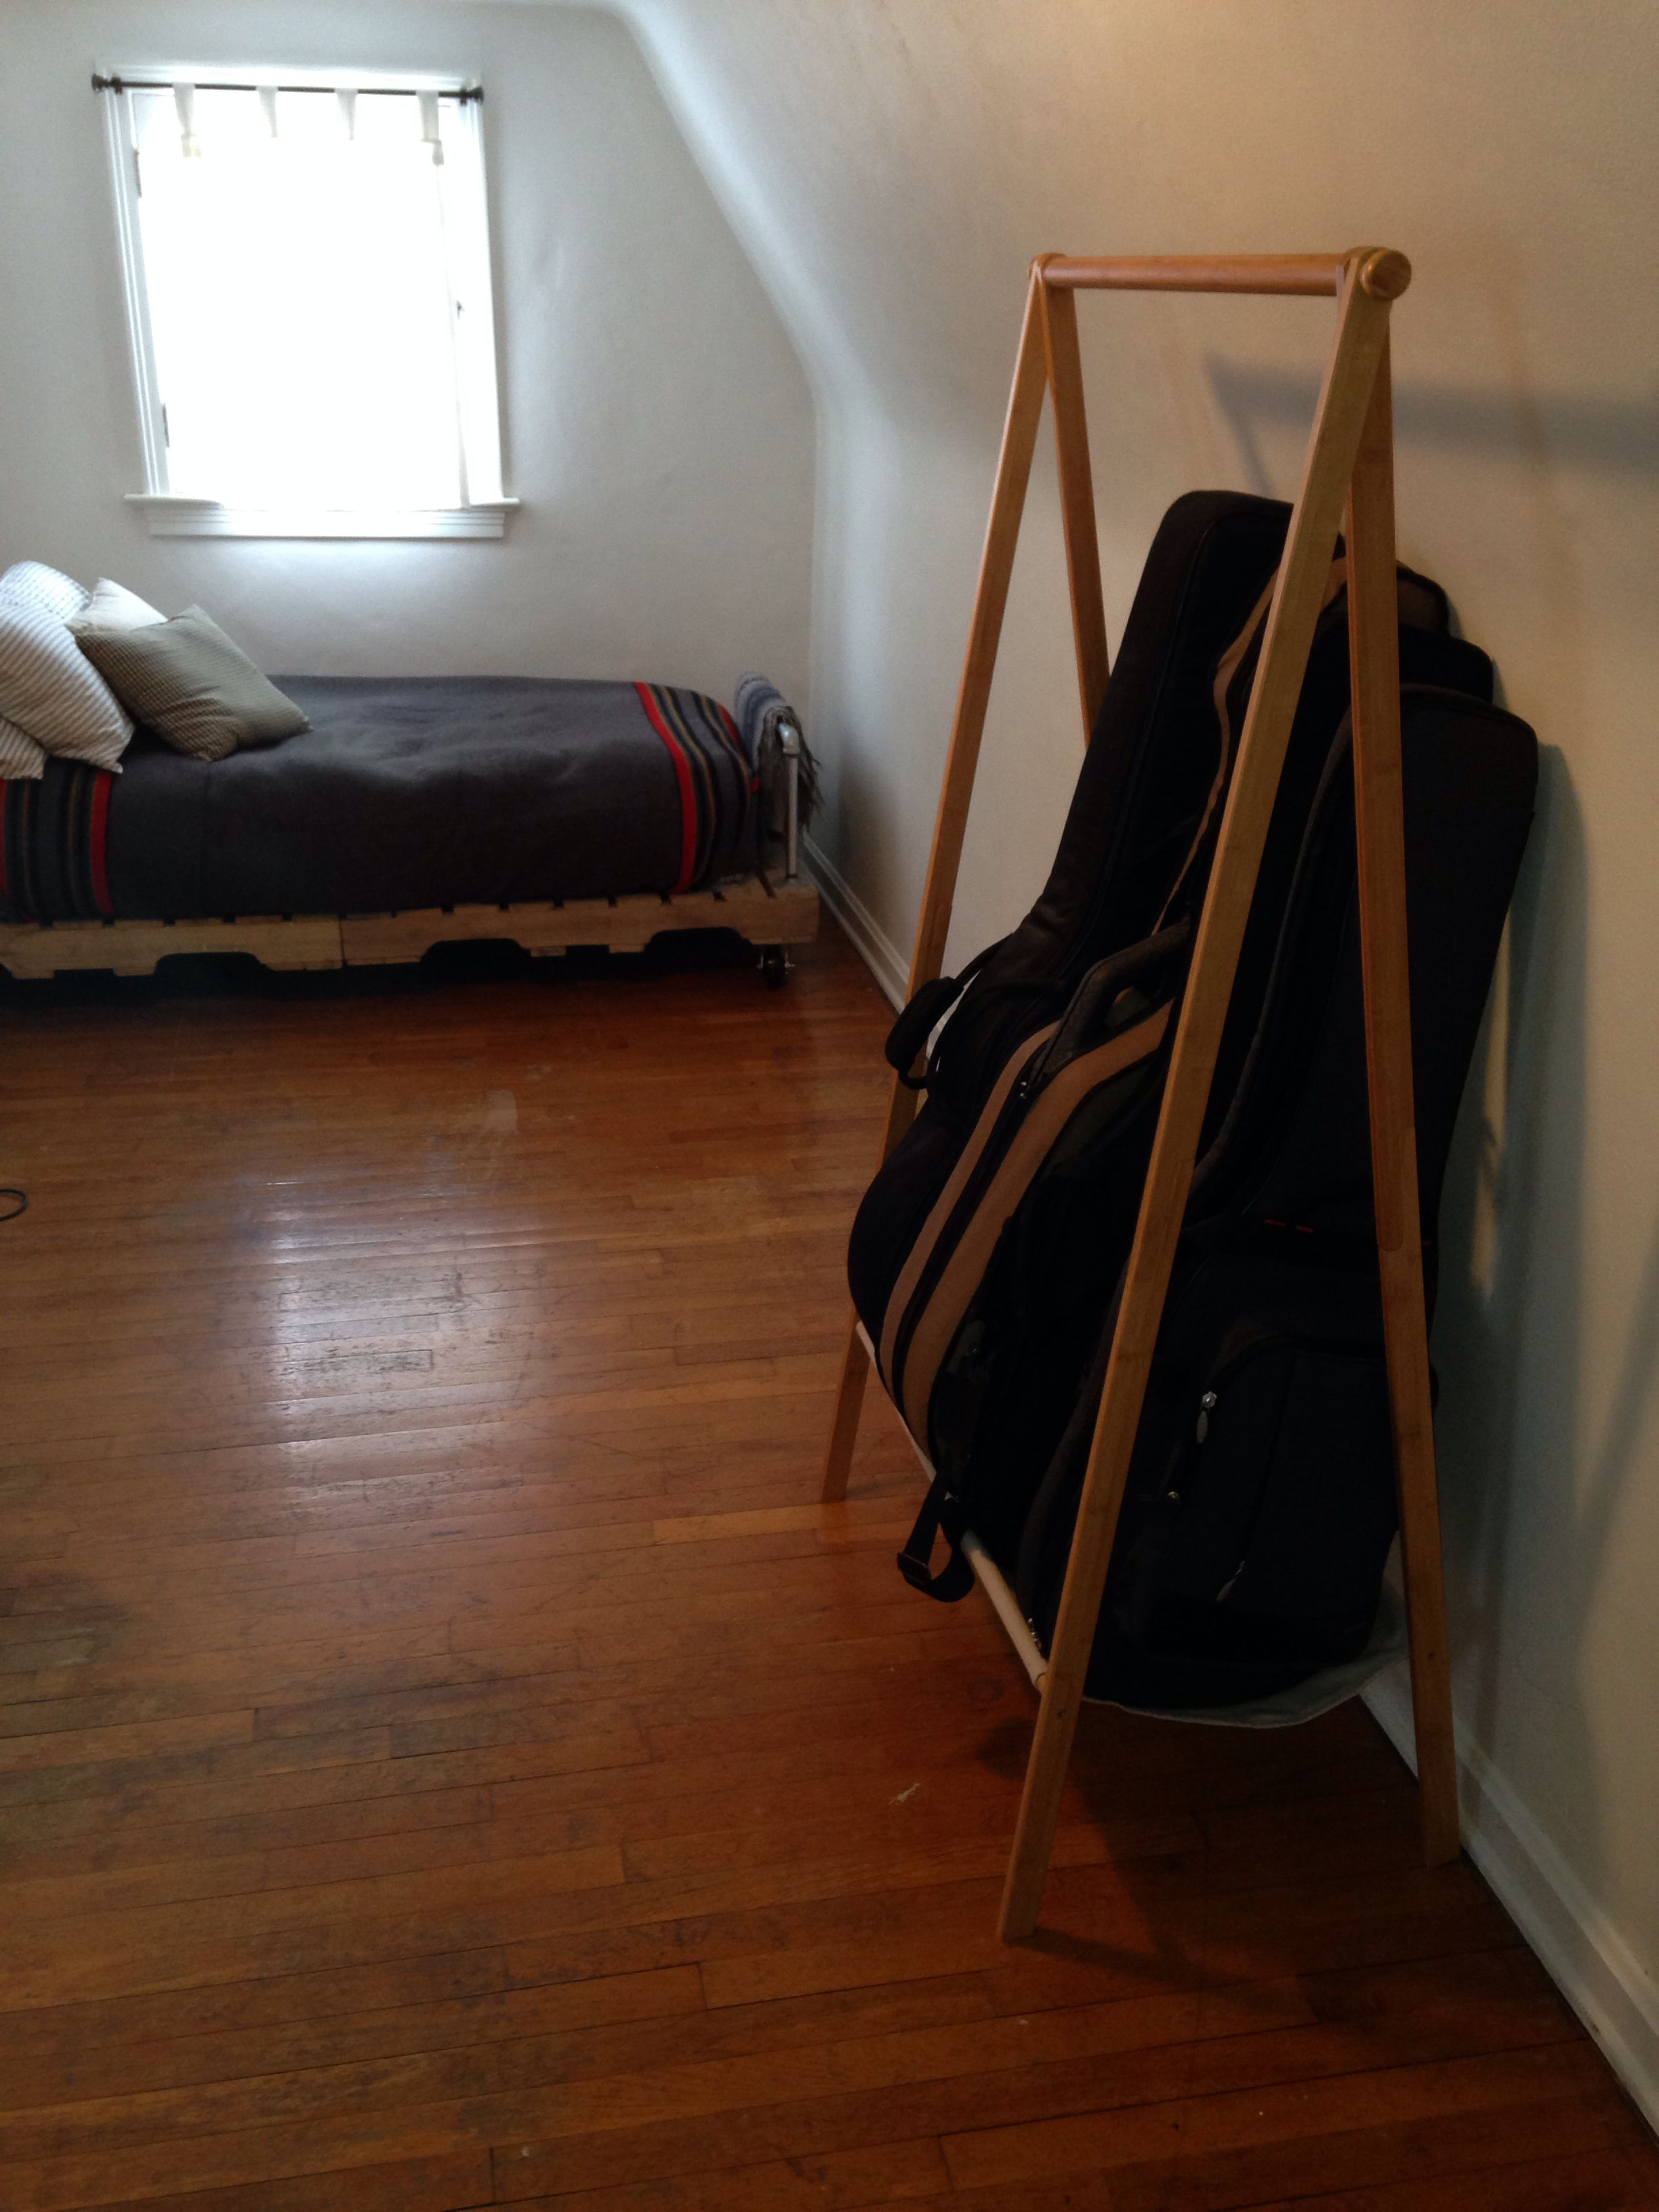 Target Clothes Hanger Used Guitar Rack. Works Great